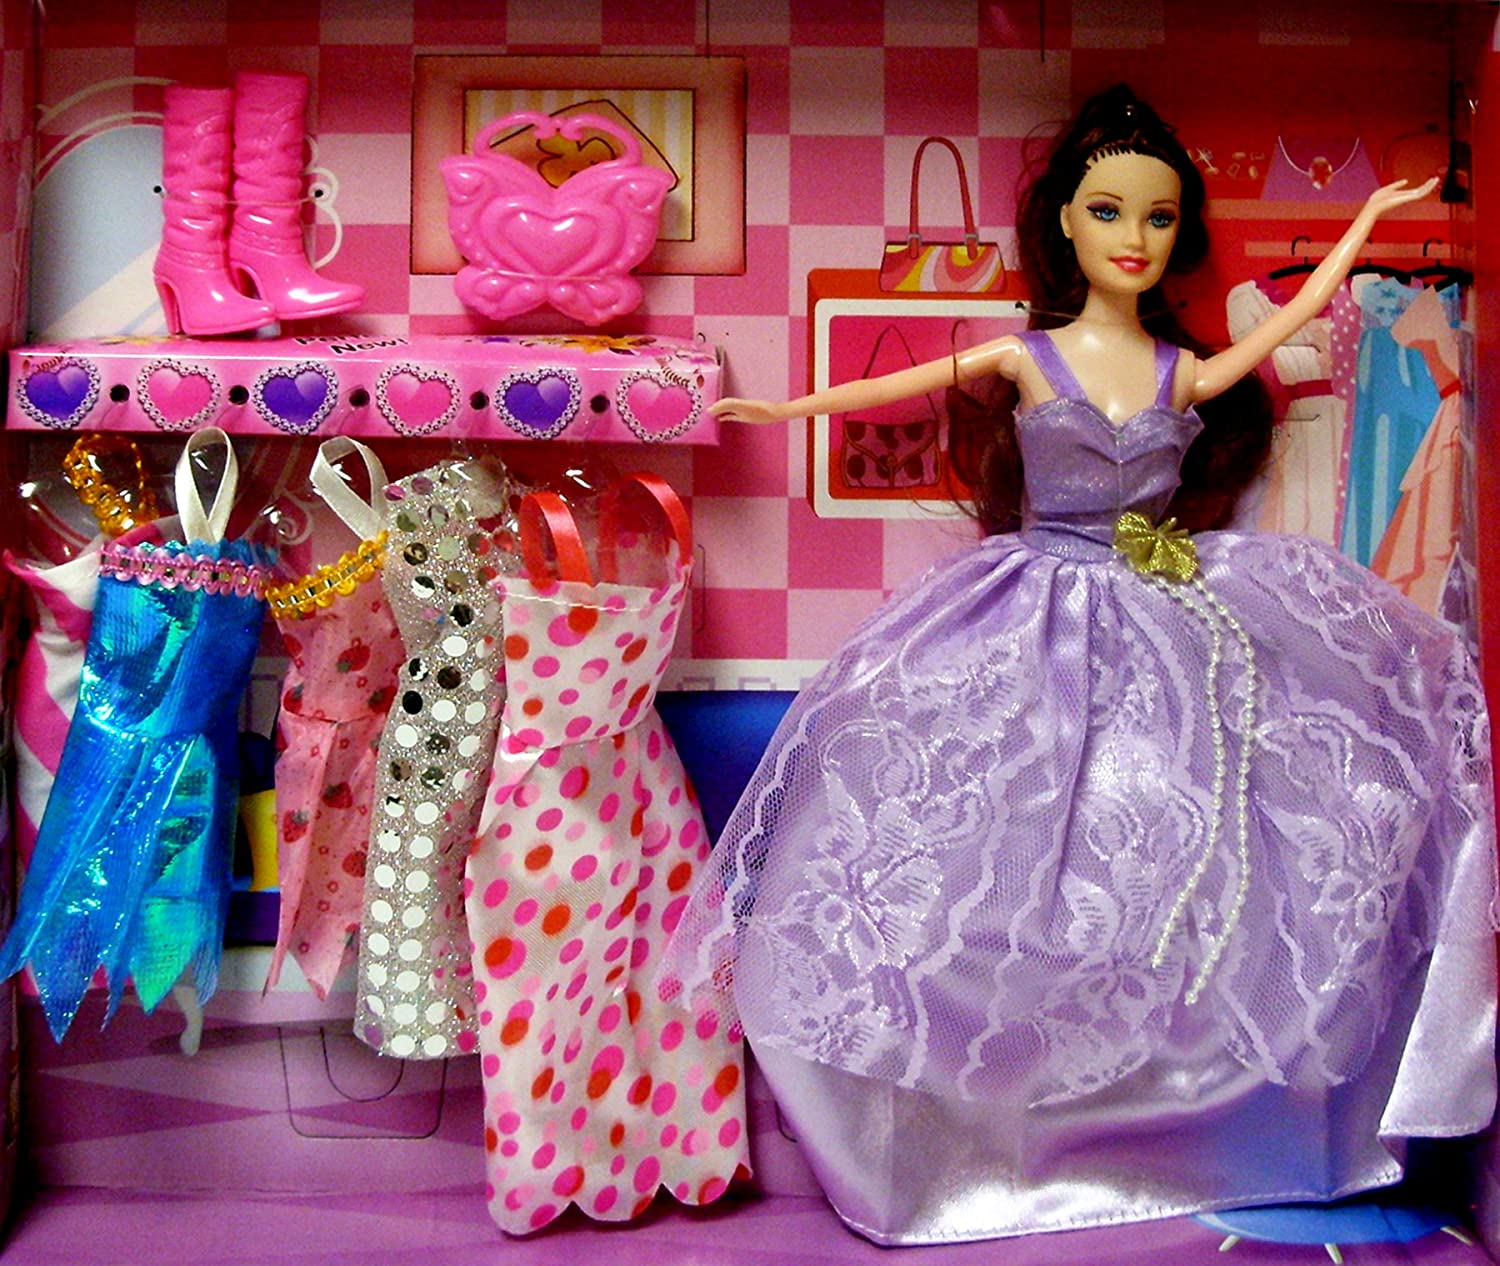 Fashion Doll for Children with Dresses & Gowns, Boots & Pocketbook Accessories~Great Gift for a Fashionable Little Girl!